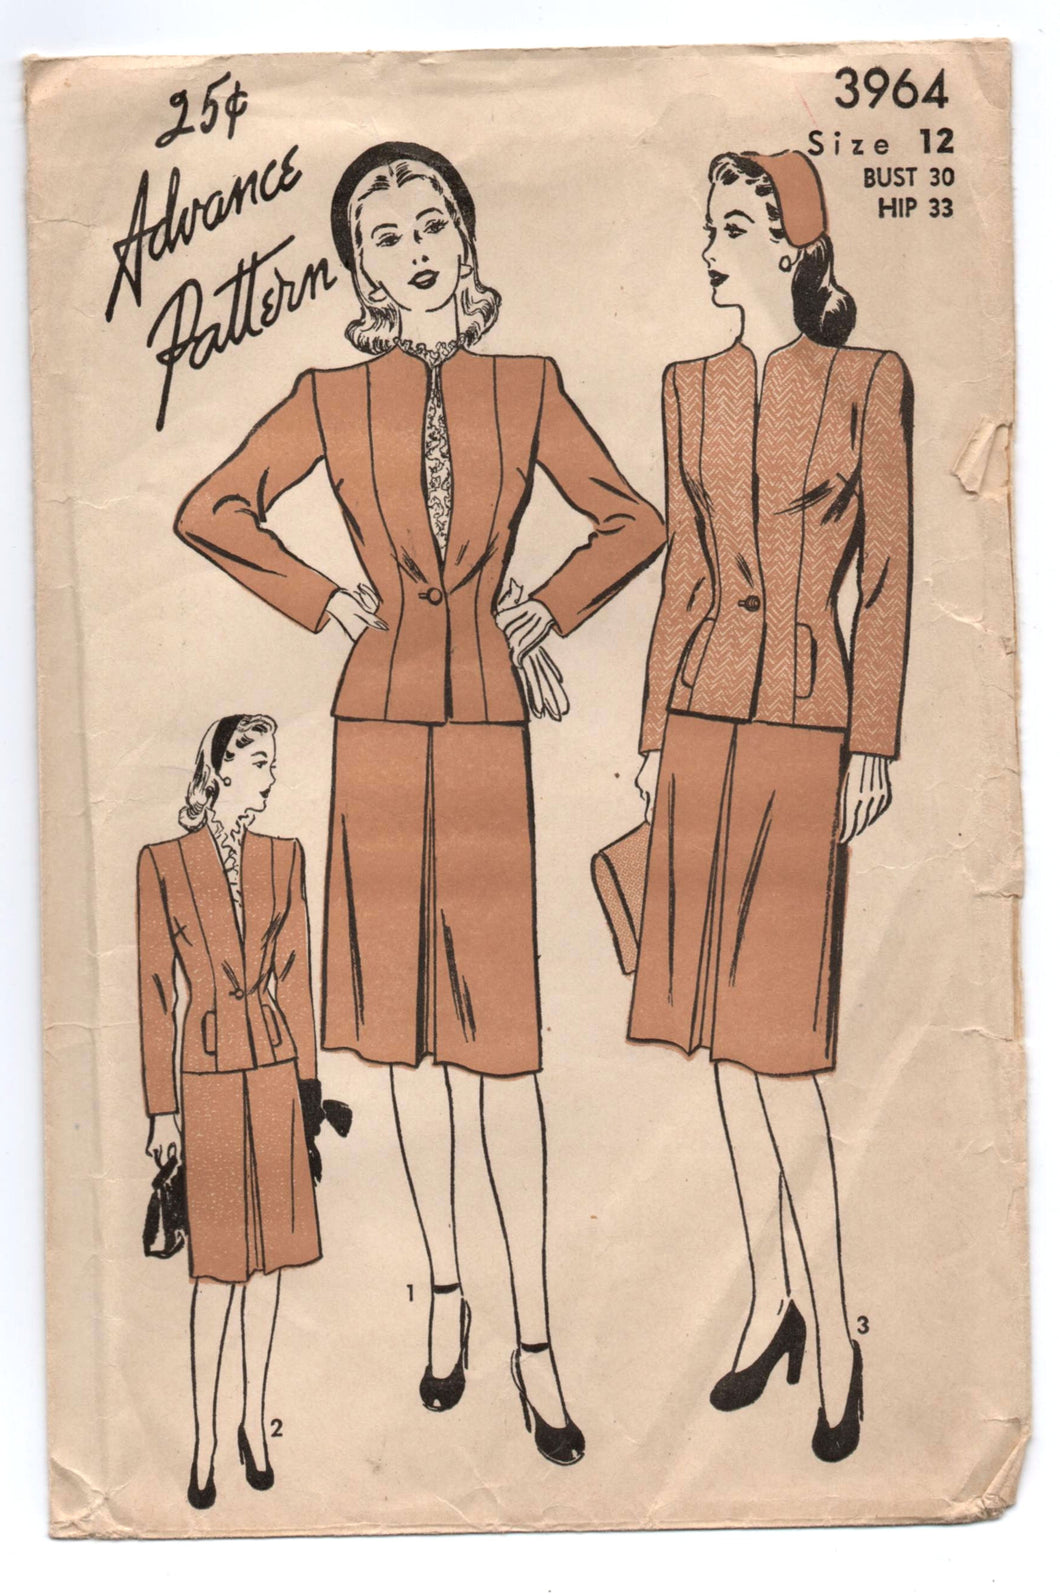 1940's Advance Two-Piece Suit with single button Jacket Pattern - Bust 30